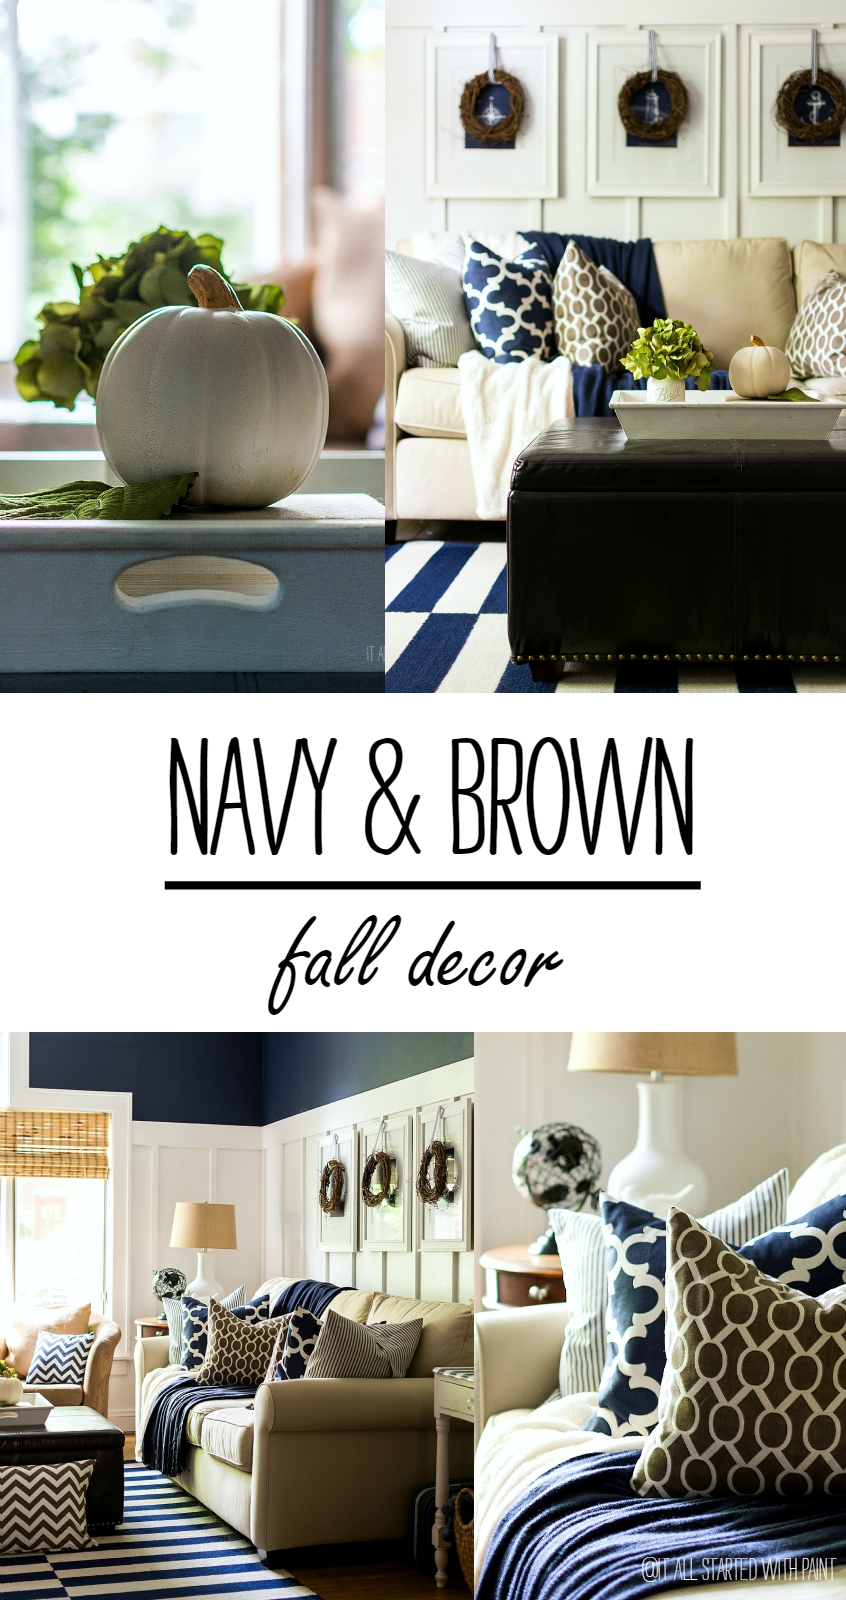 Simple Fall Decorating Ideas Using Navy & Brown & White